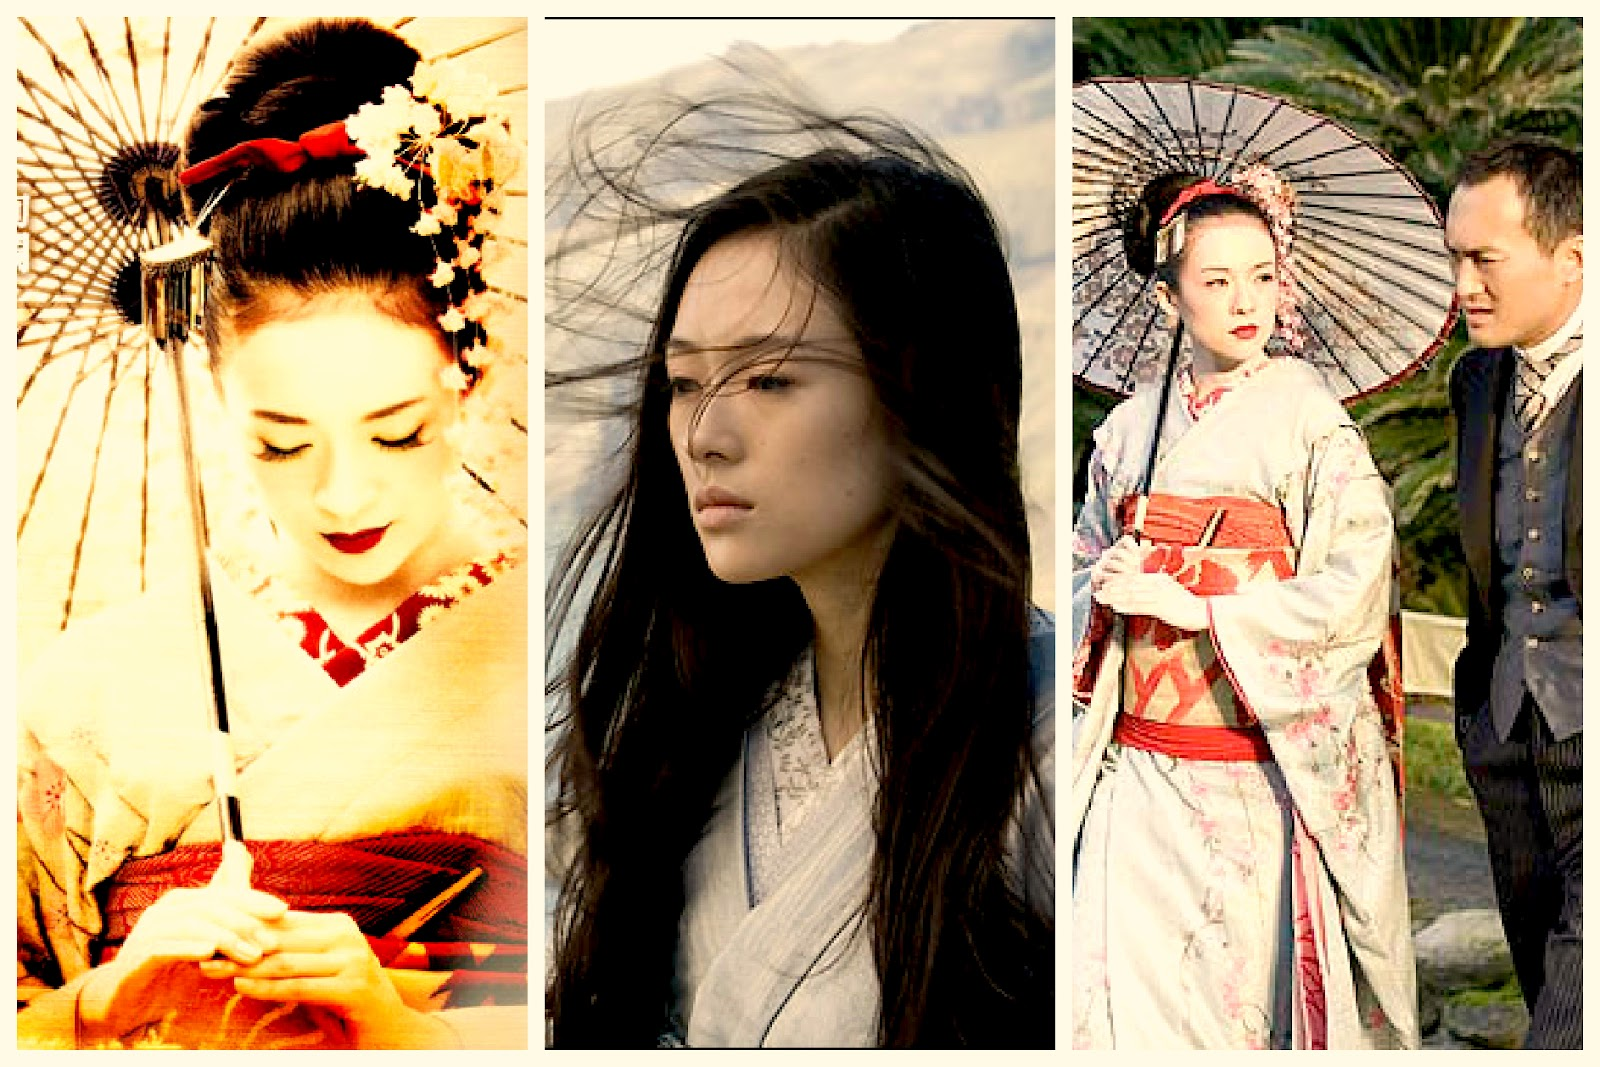 memoirs of a geisha Memoirs of a geisha is a novel written by author arthur golden, it was first published in 1997, the novel is told in first-person perspective and tells the fictional story/biography of a geisha working in kyoto, japan, before and after world war ii.